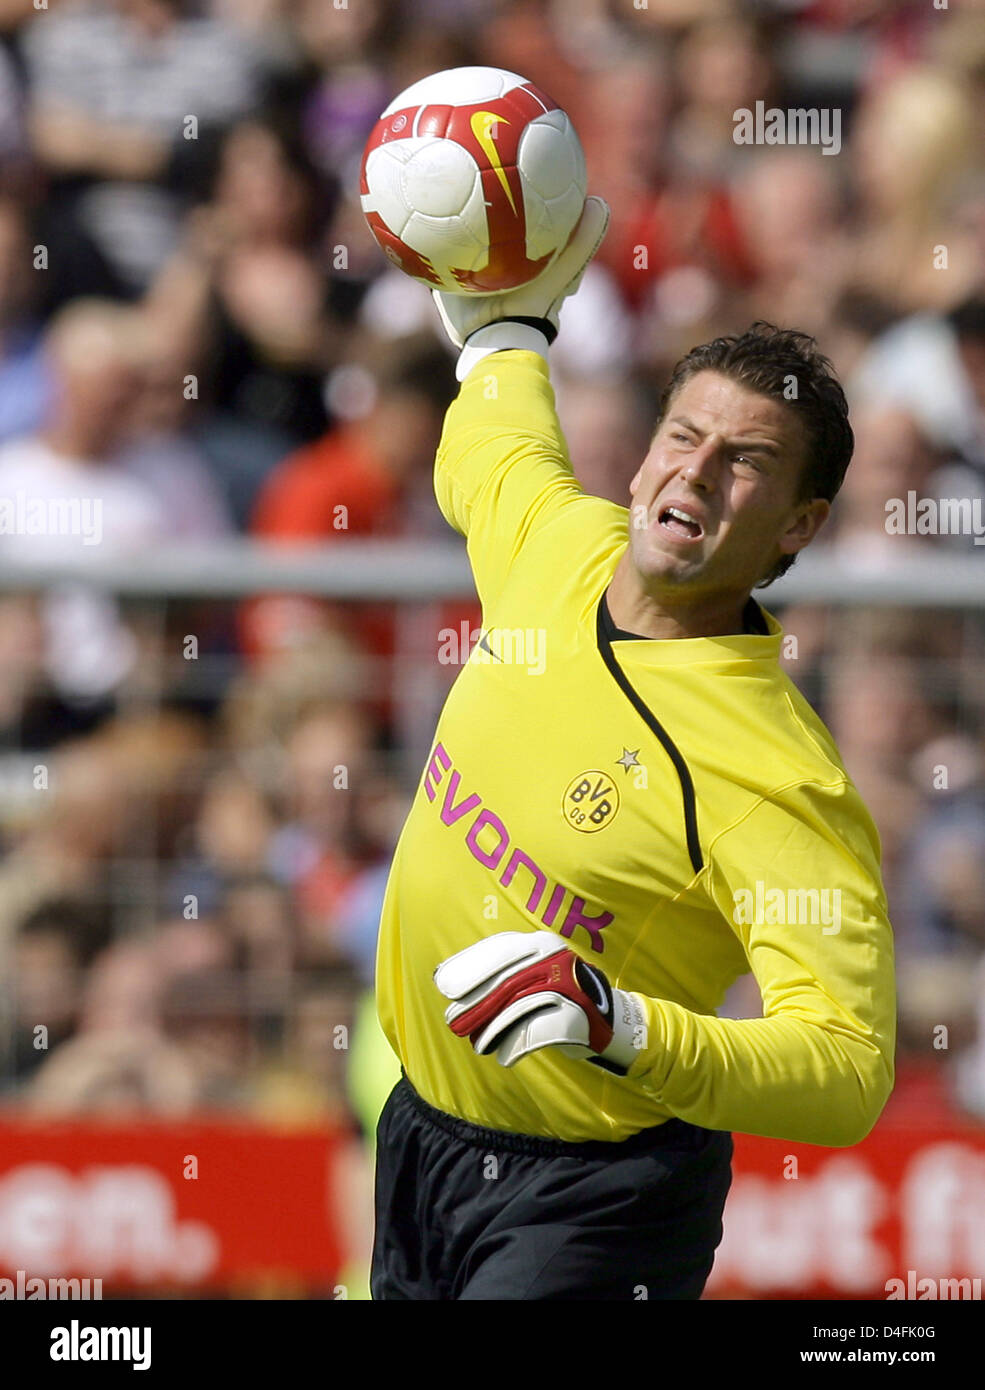 Dortmund's goalie Roman Weidenfeller throws the ball in the DFB Cup 1st round match Rot-Weiss Essen v Borussia - Stock Image